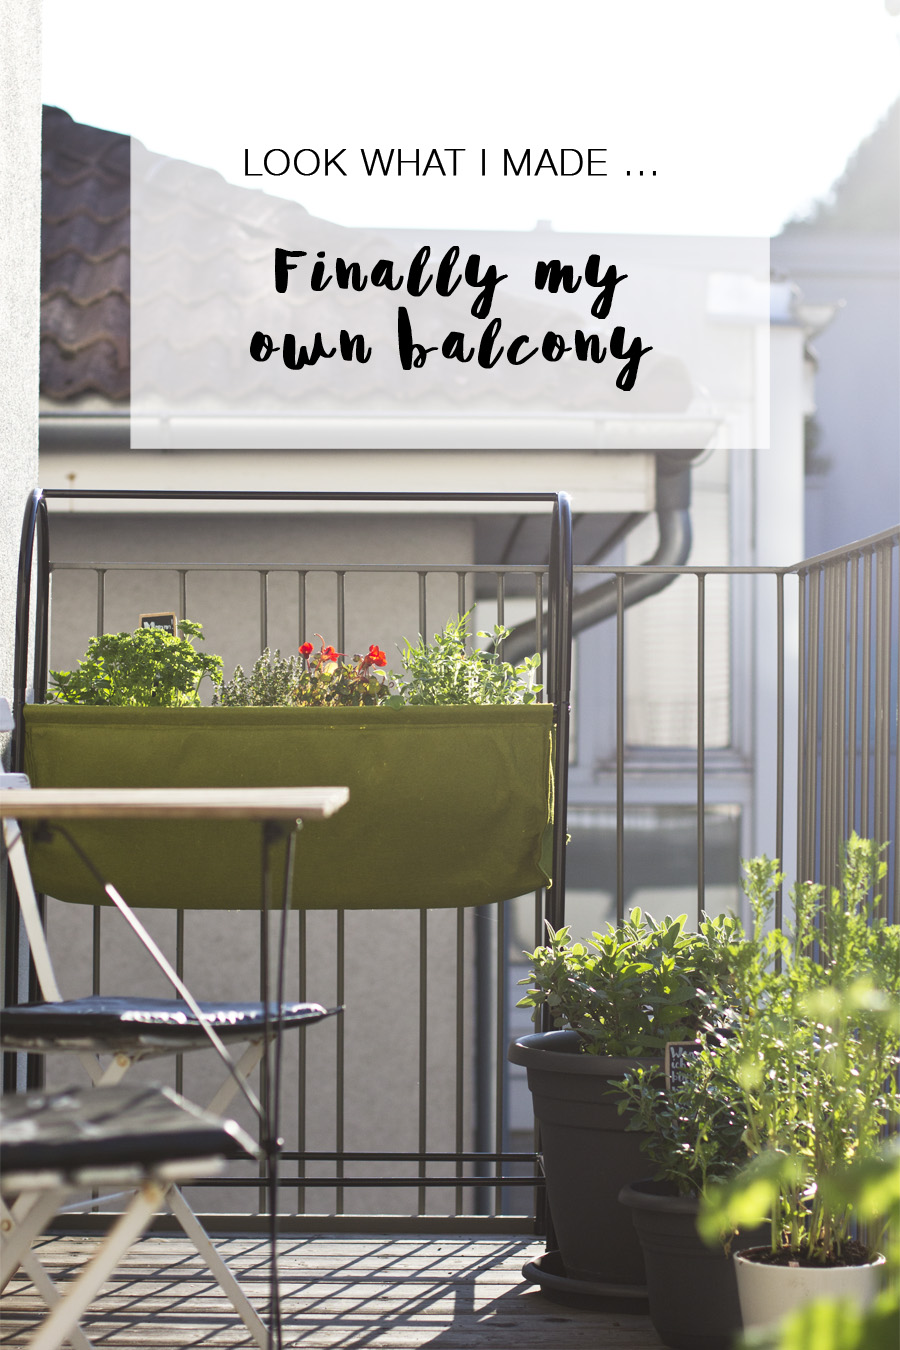 Grow your own herb garden on the balcony | LOOK WHAT I MADE ...